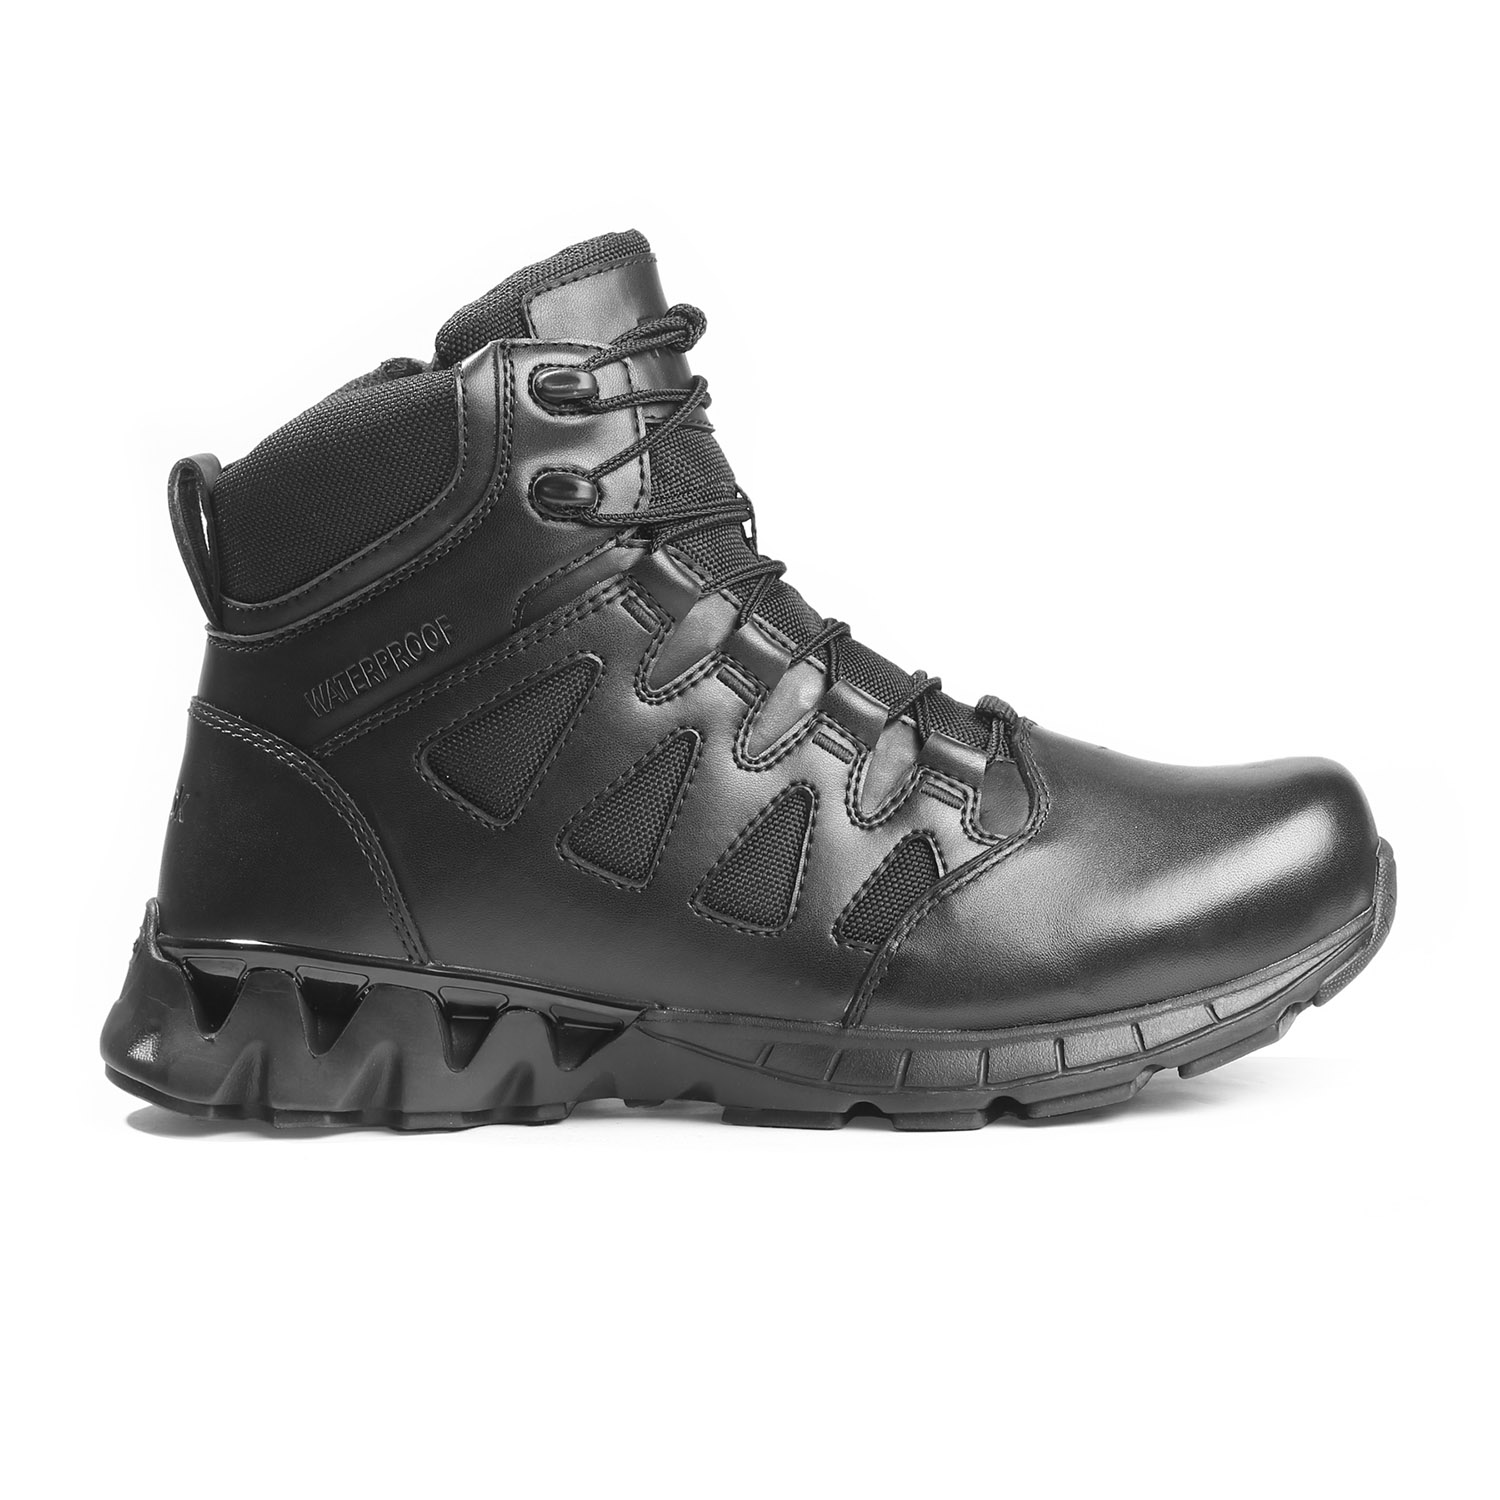 "Reebok Women's 6"" Zigkick Tactical Side Zip Waterproof"